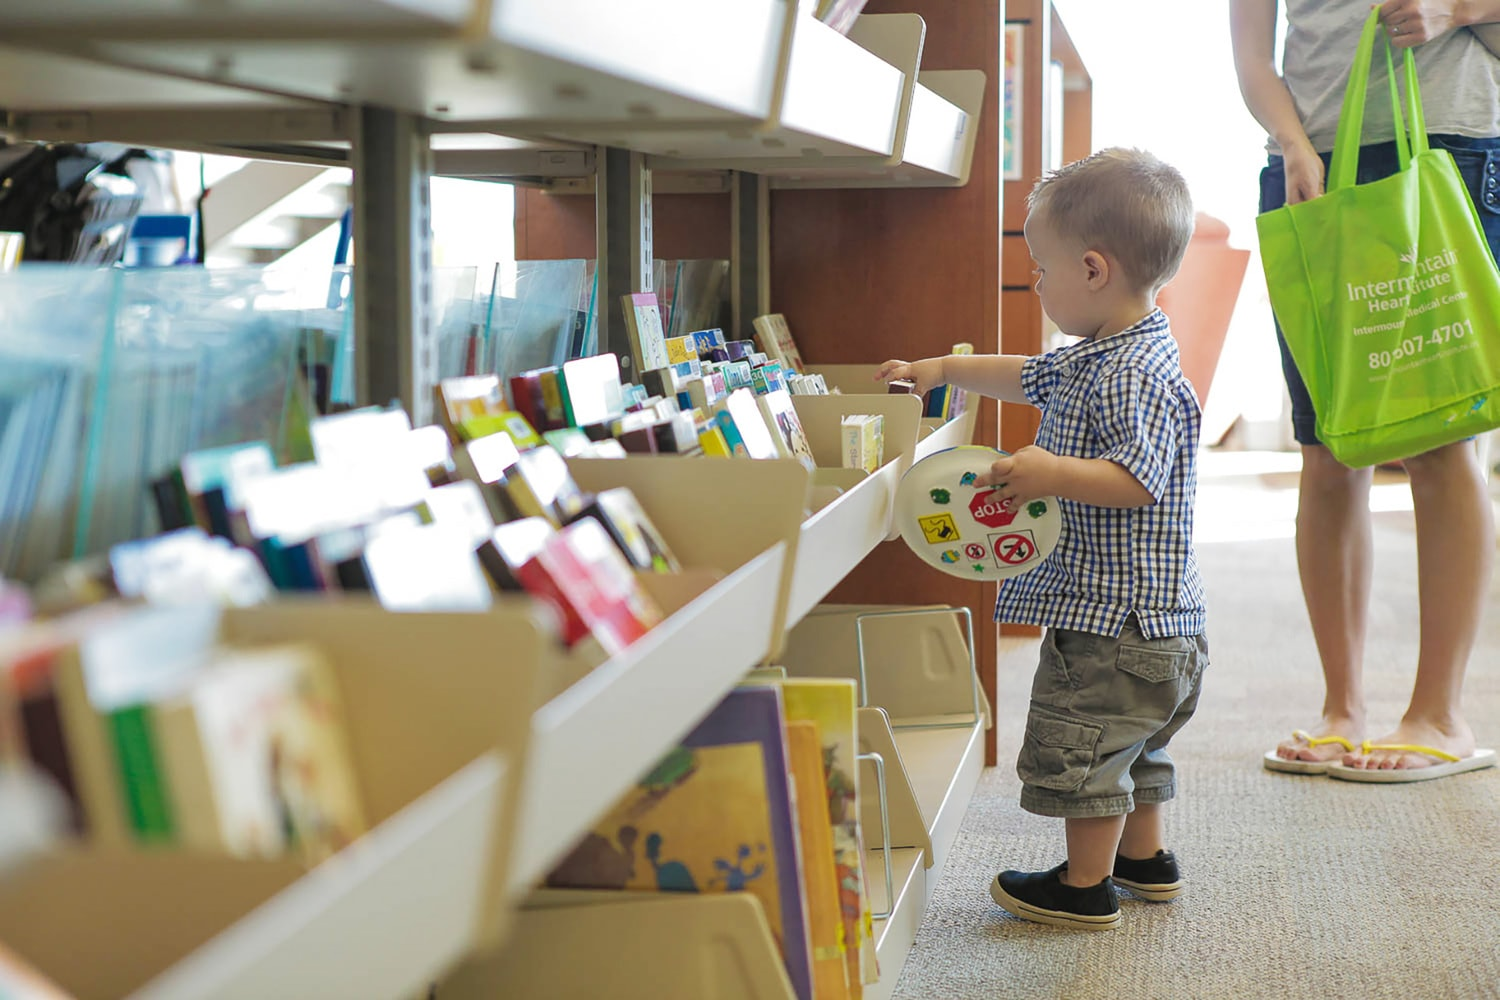 Cantilever Shelving accommodates all ages